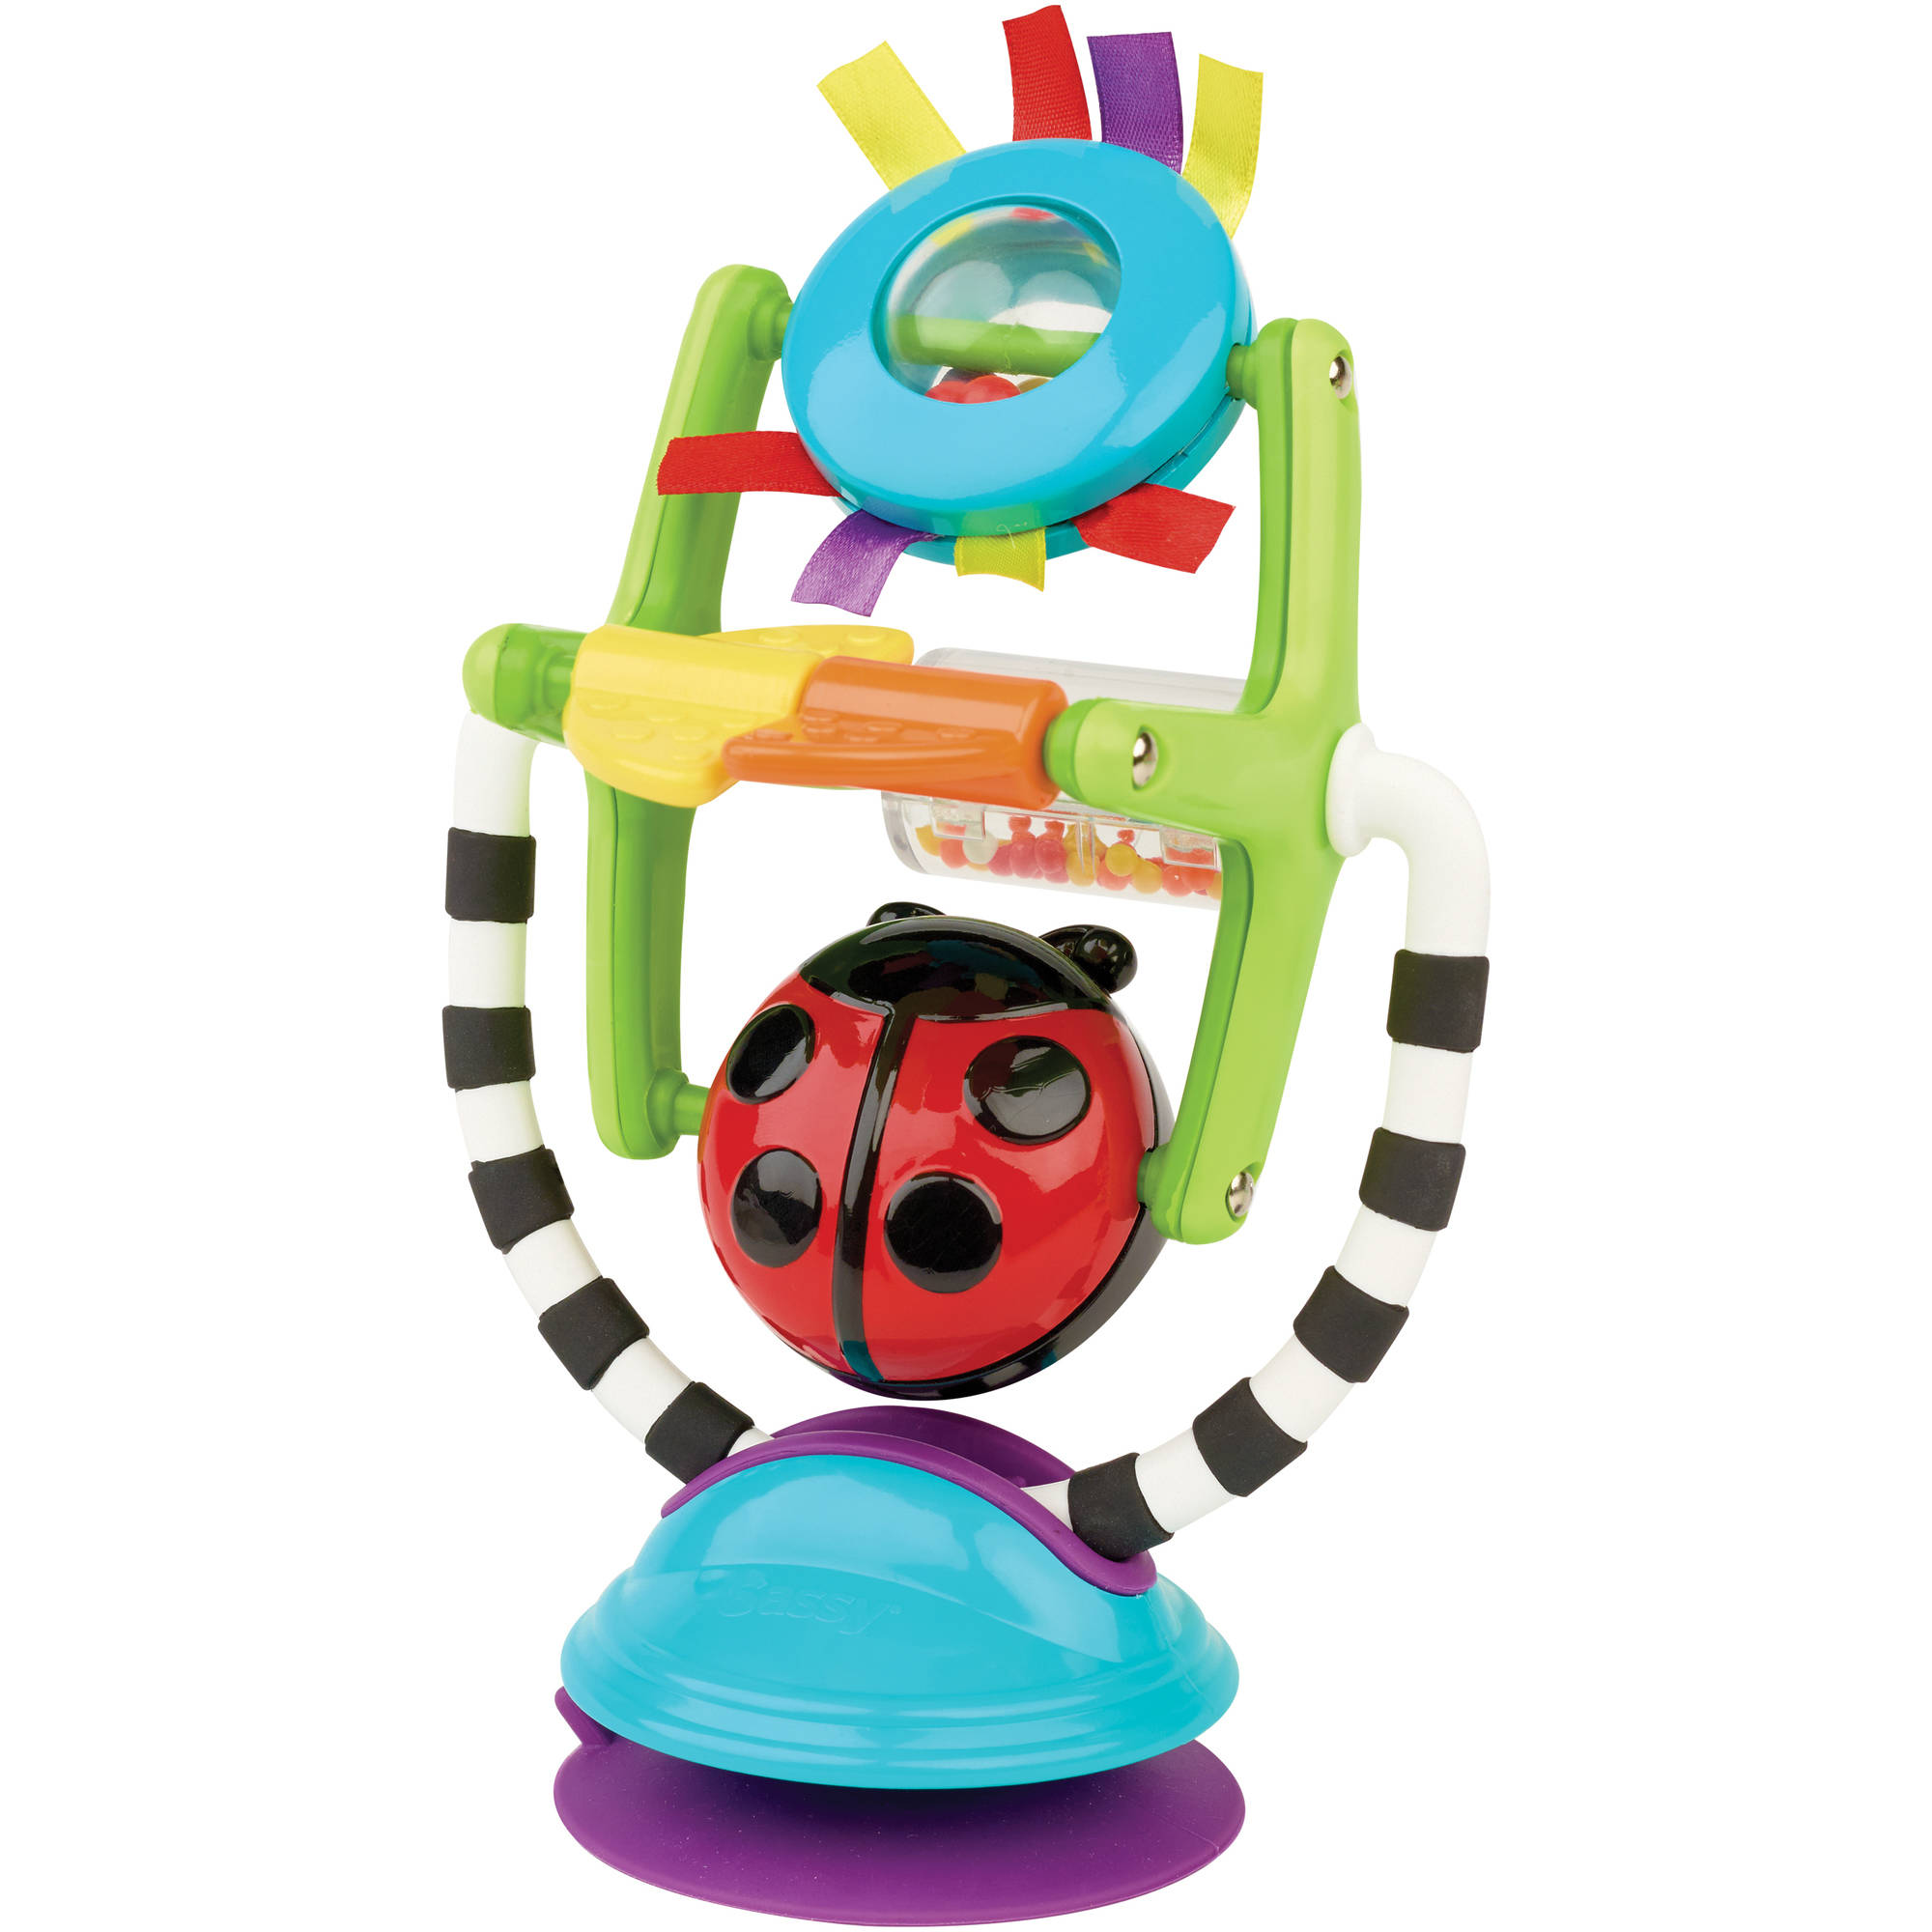 Sassy Sensation Station High Chair Toy